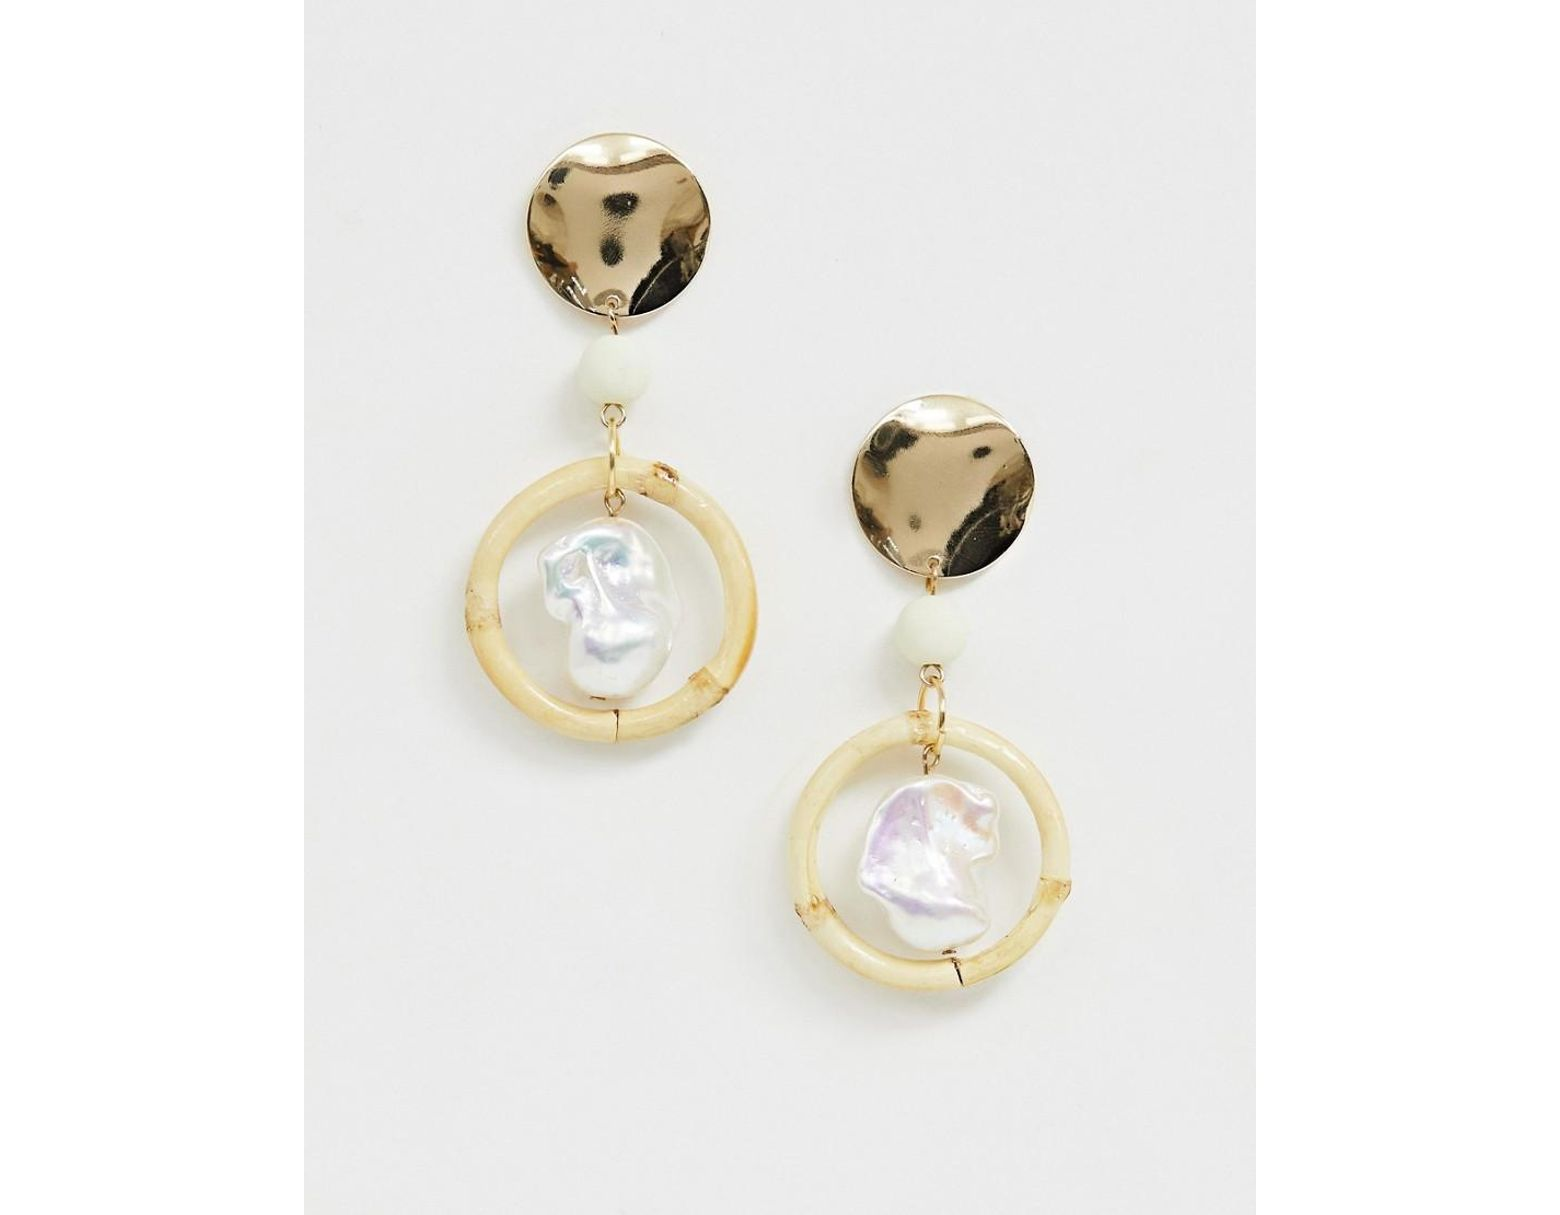 a4731b469 ASOS Earrings With Bamboo Hoop And Faux Freshwater Pearl In Gold Tone in  Metallic - Lyst